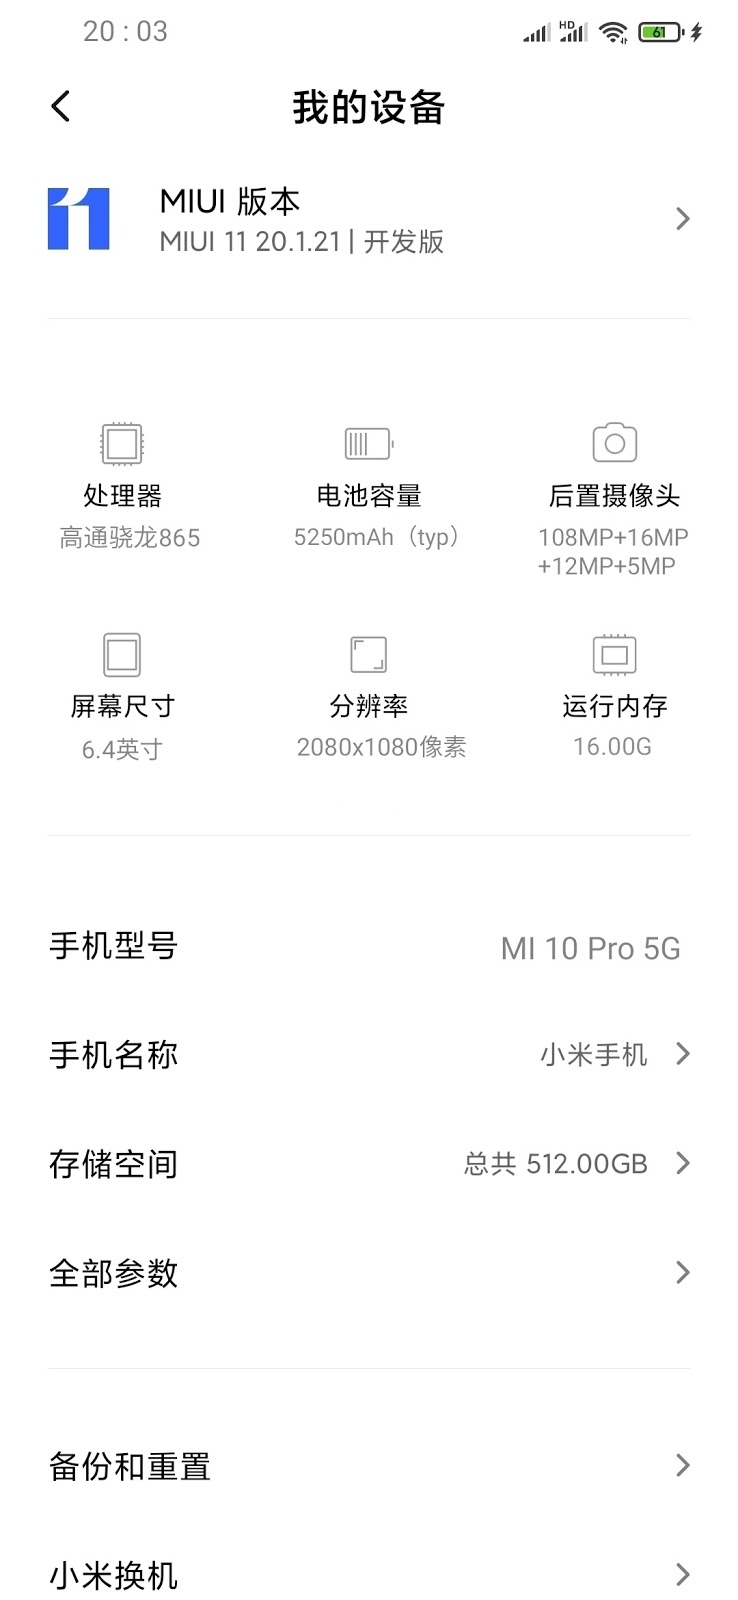 Finally it became known all about Xiaomi Mi 10 Pro